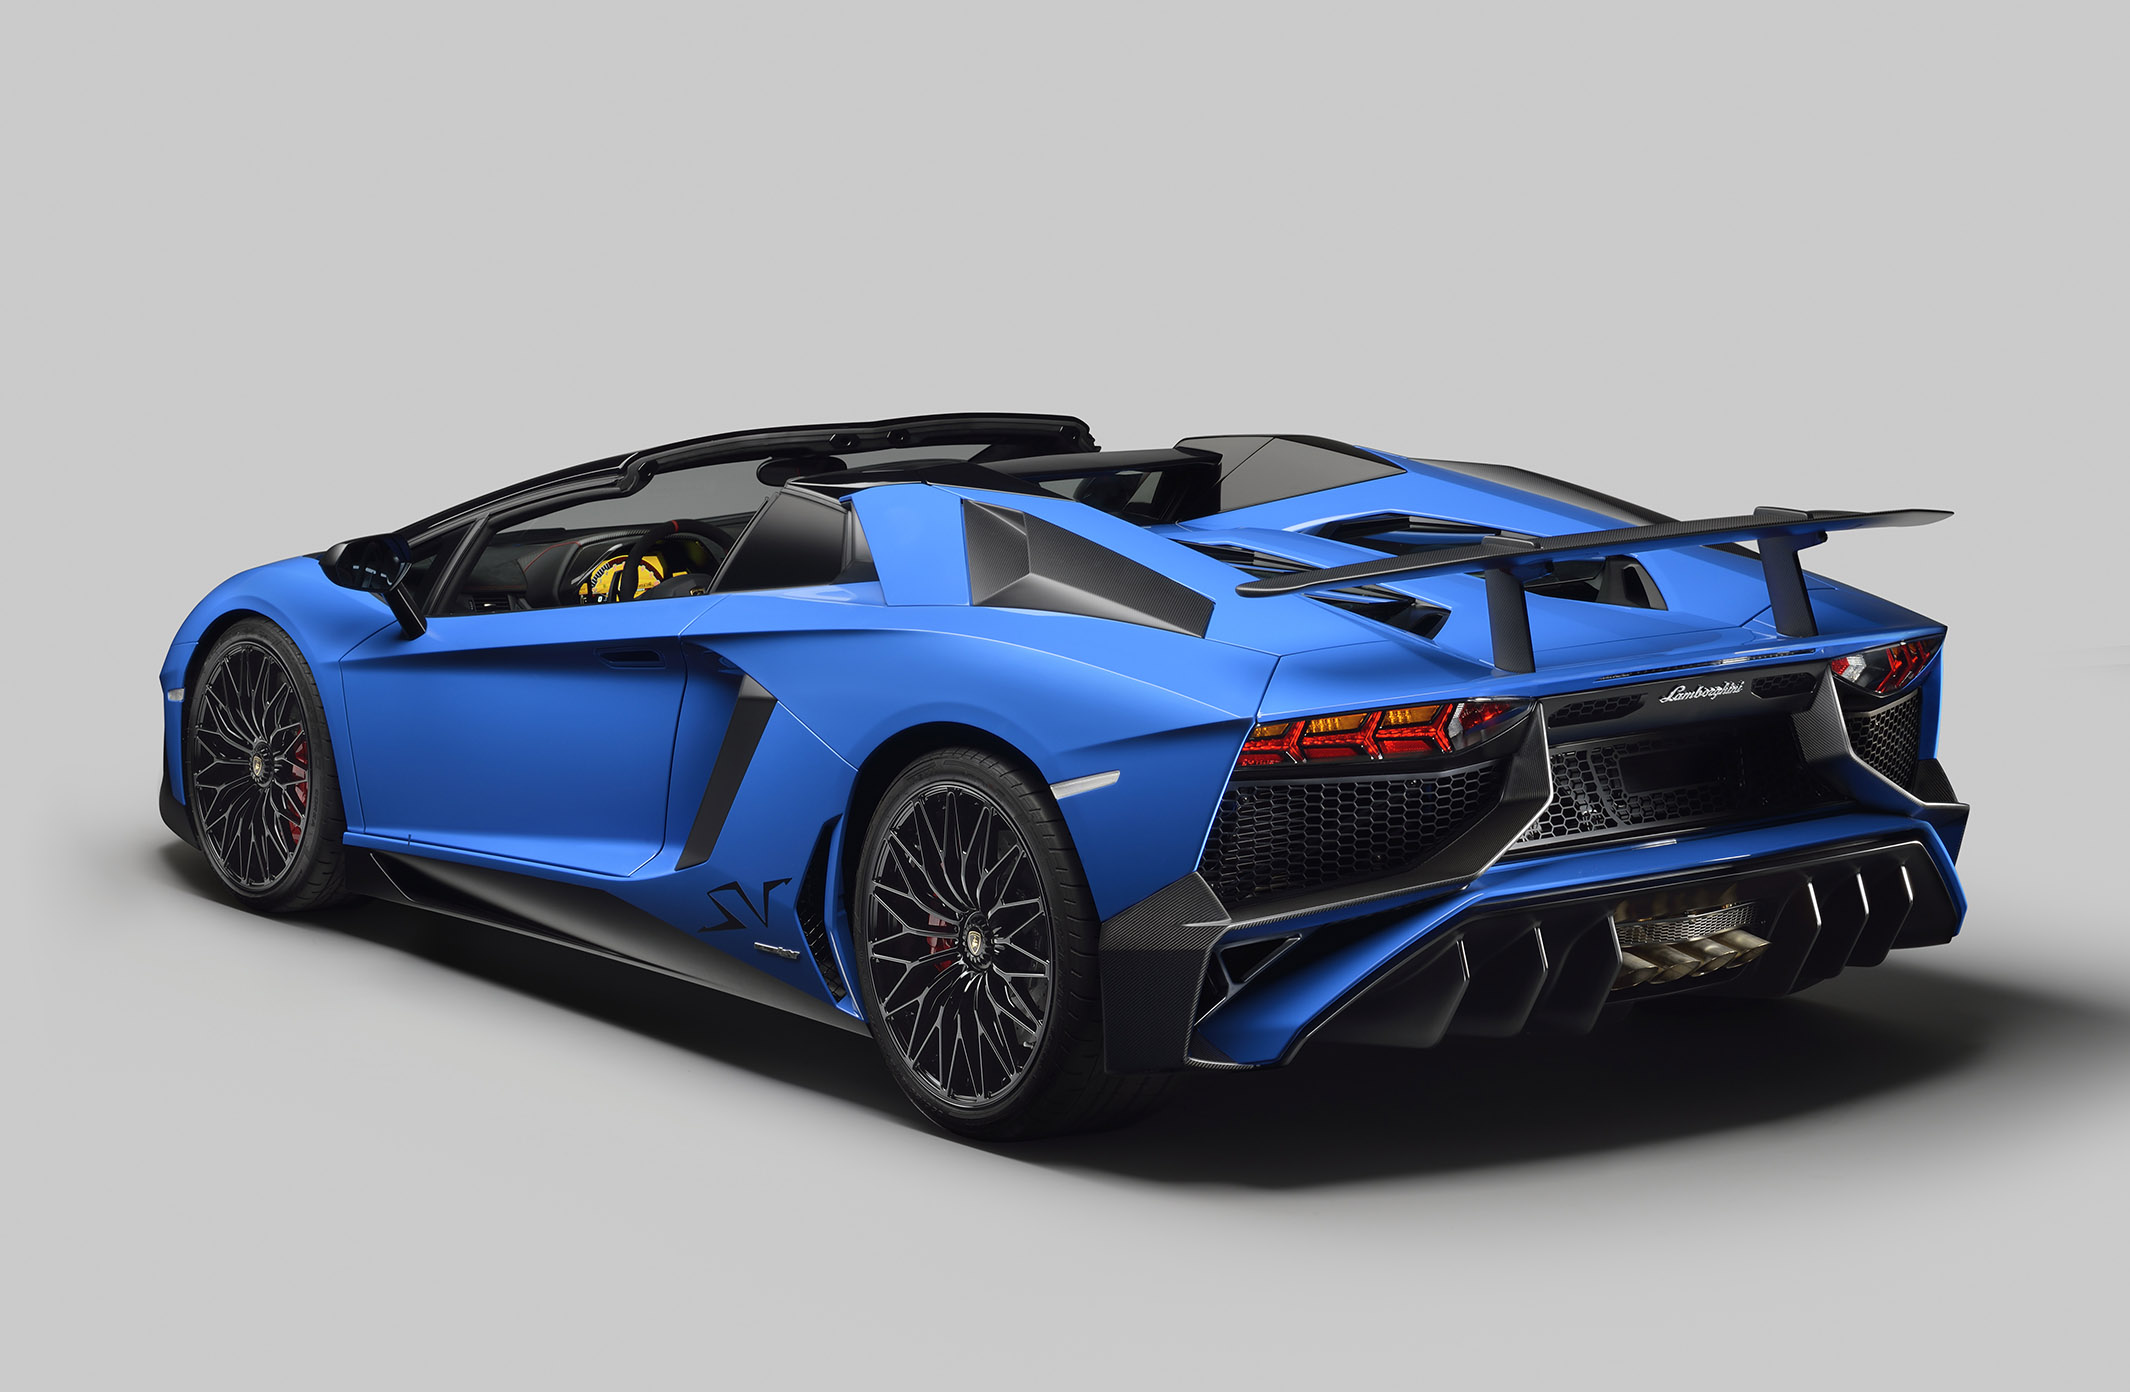 Lamborghini Debuts Aventador Superveloce Roadster And HD Wallpapers Download free images and photos [musssic.tk]